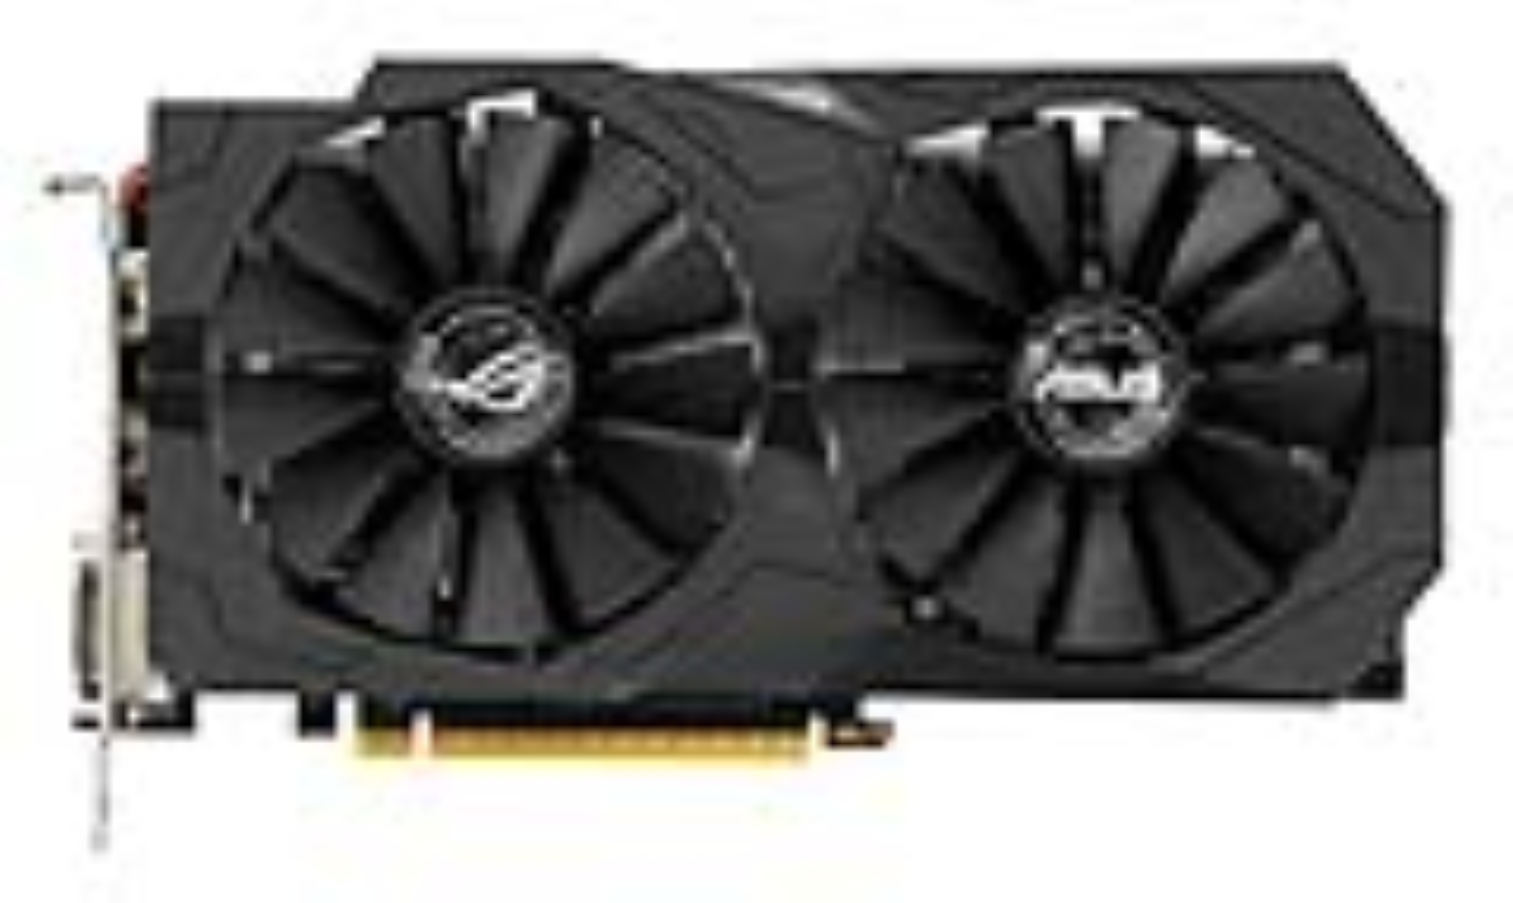 ASUS STRIX-GTX1050-2G-GAMING - 2GB GDDR5 (128 bit), HDMI, 2x DVI, DP